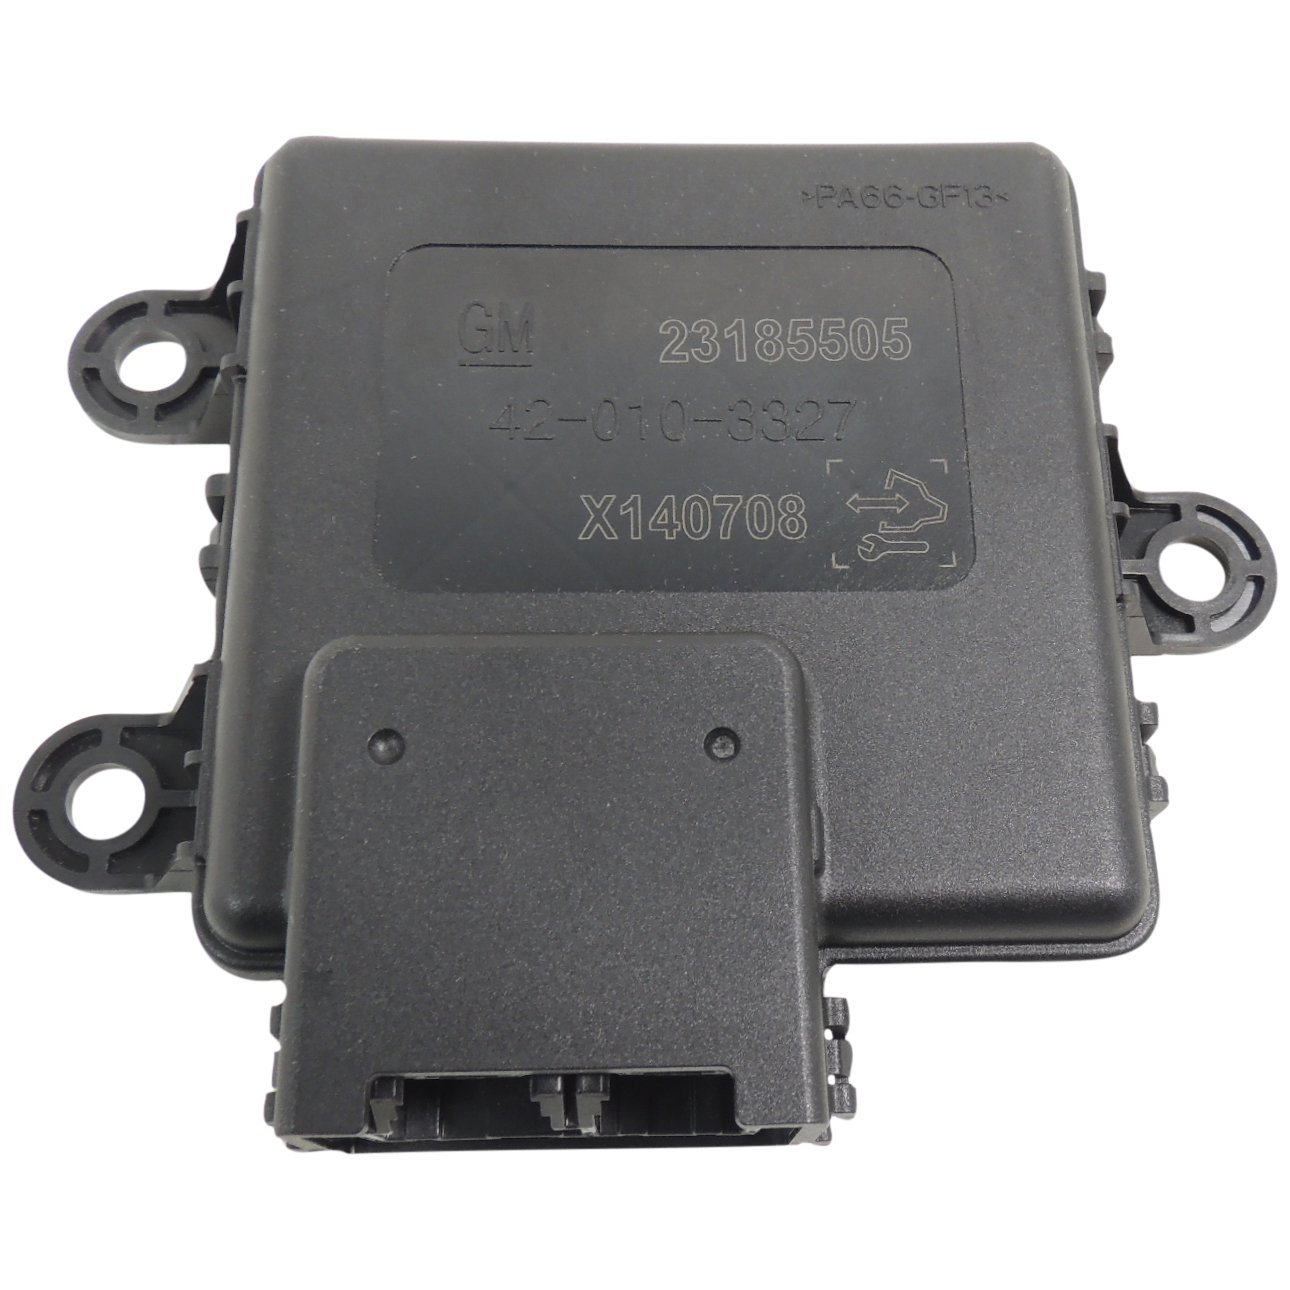 23185505 Park Assist Module New OEM GM 2015 Cadillac ATS w/Object Detection UD7 by General Motors